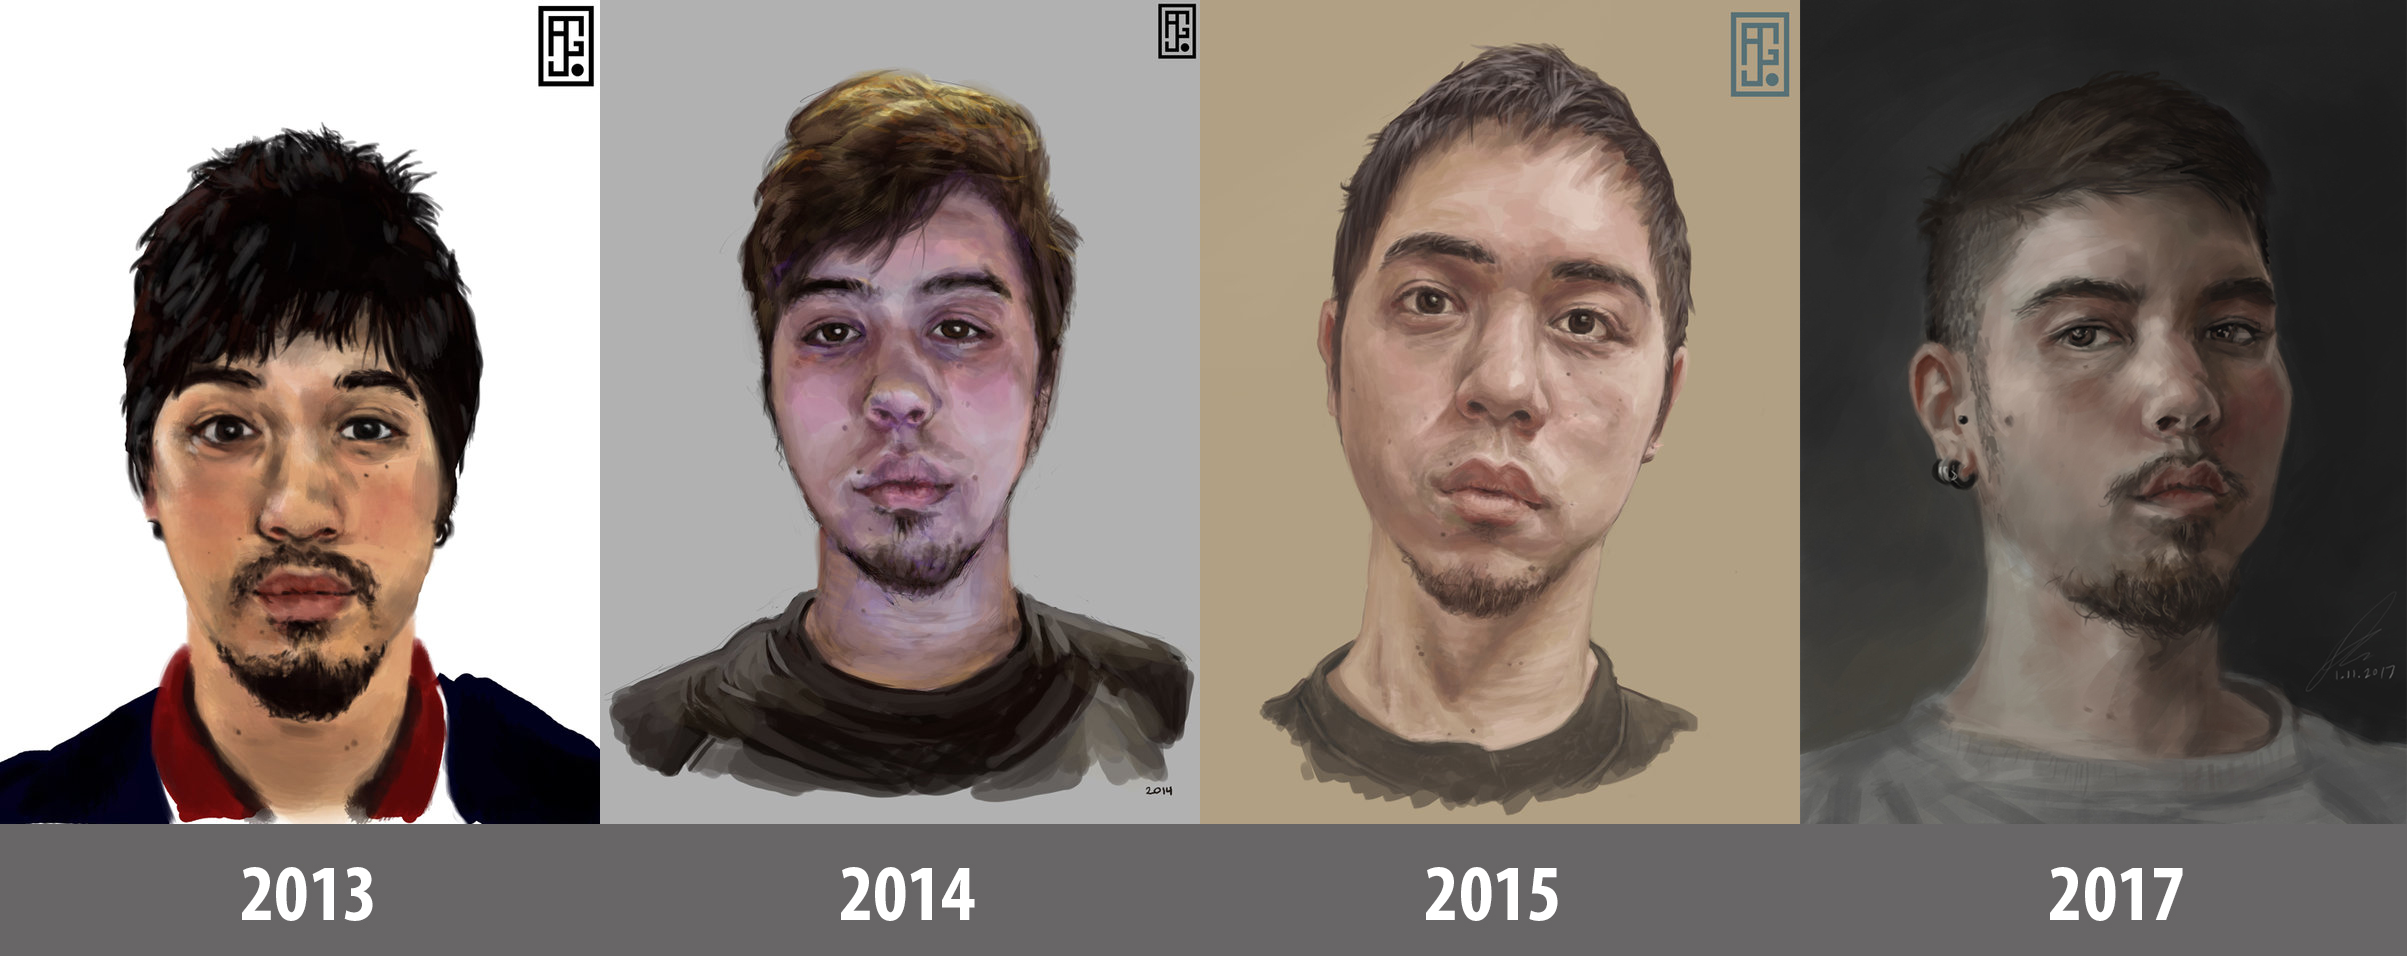 [Image: portrait_progress_by_andrew_gibbons-dbsdjwz.jpg]